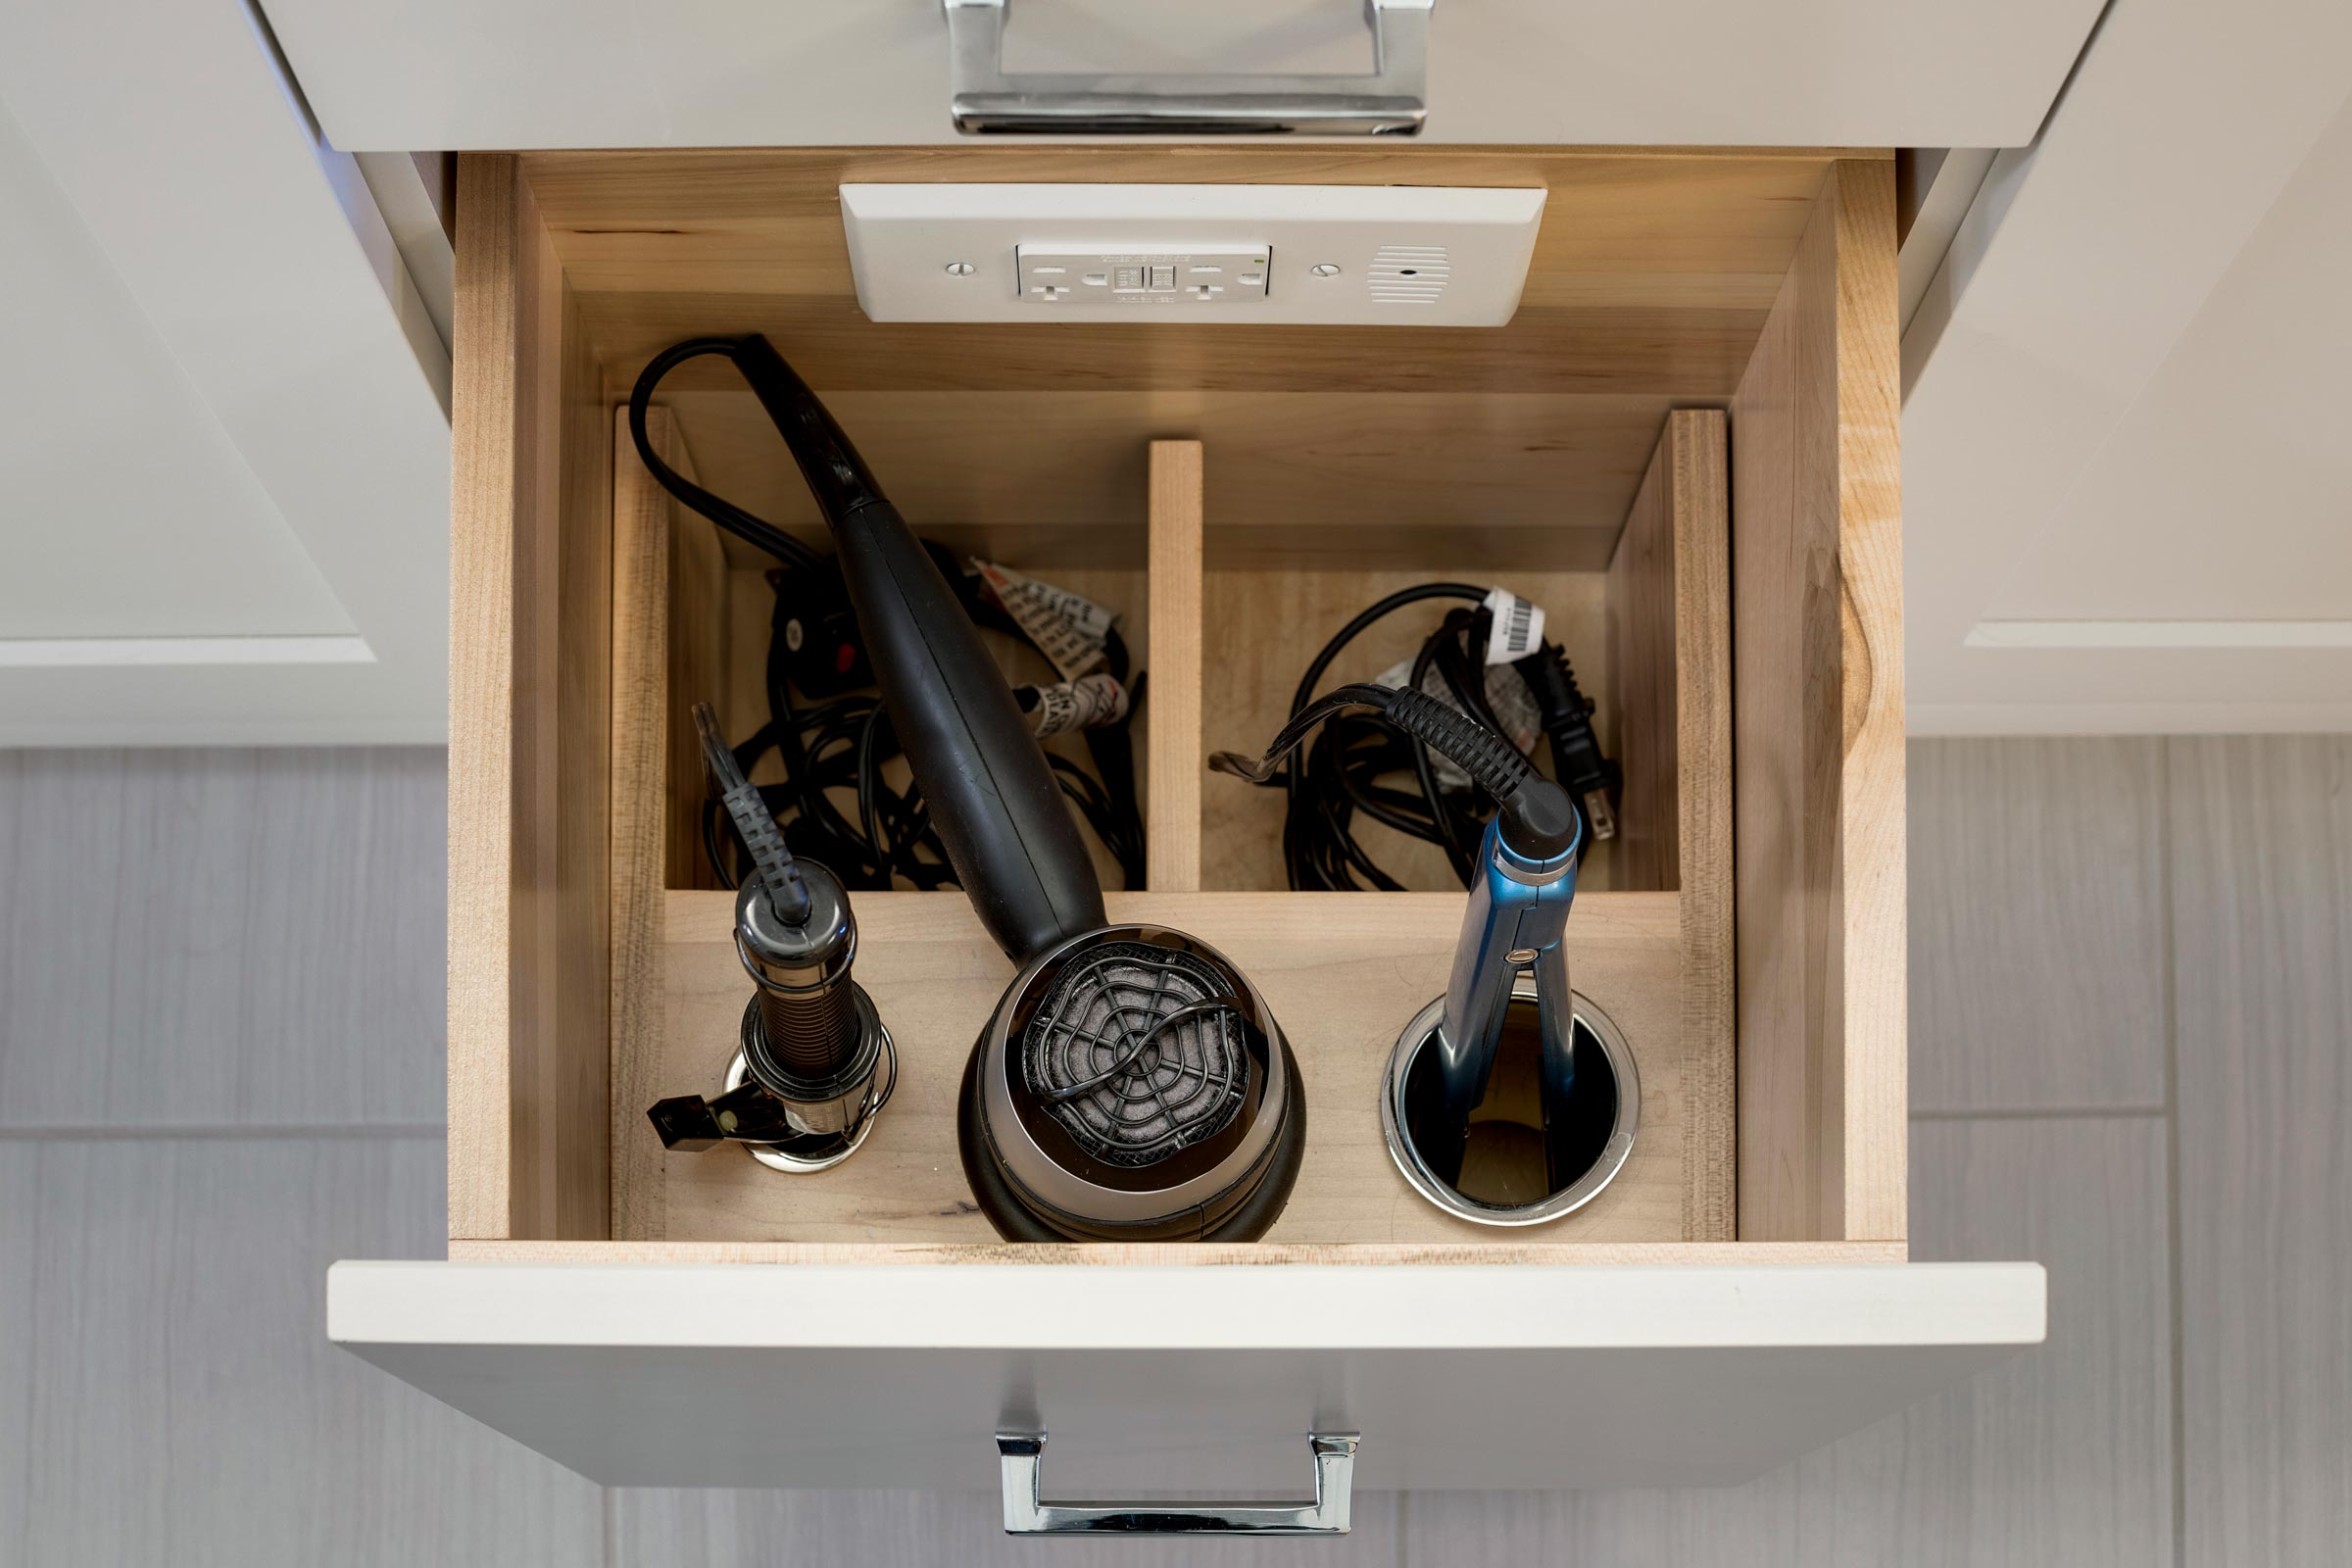 Functional bathroom design for teenage girl, with outlets inside drawers for hair dryers and irons - Maven Design Studio